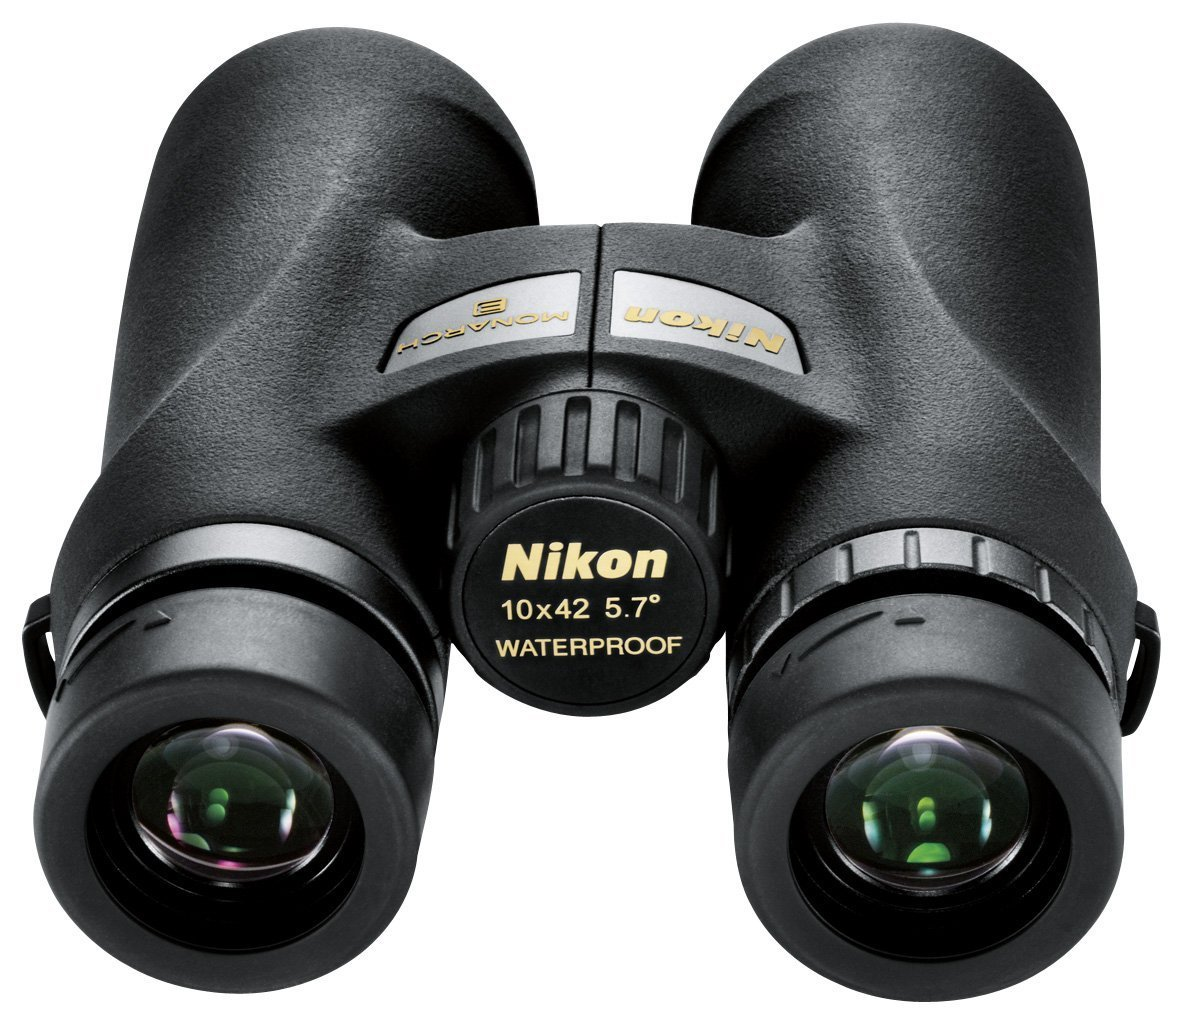 Nikon 7541 Monarch 3 10x42 Binocular Review